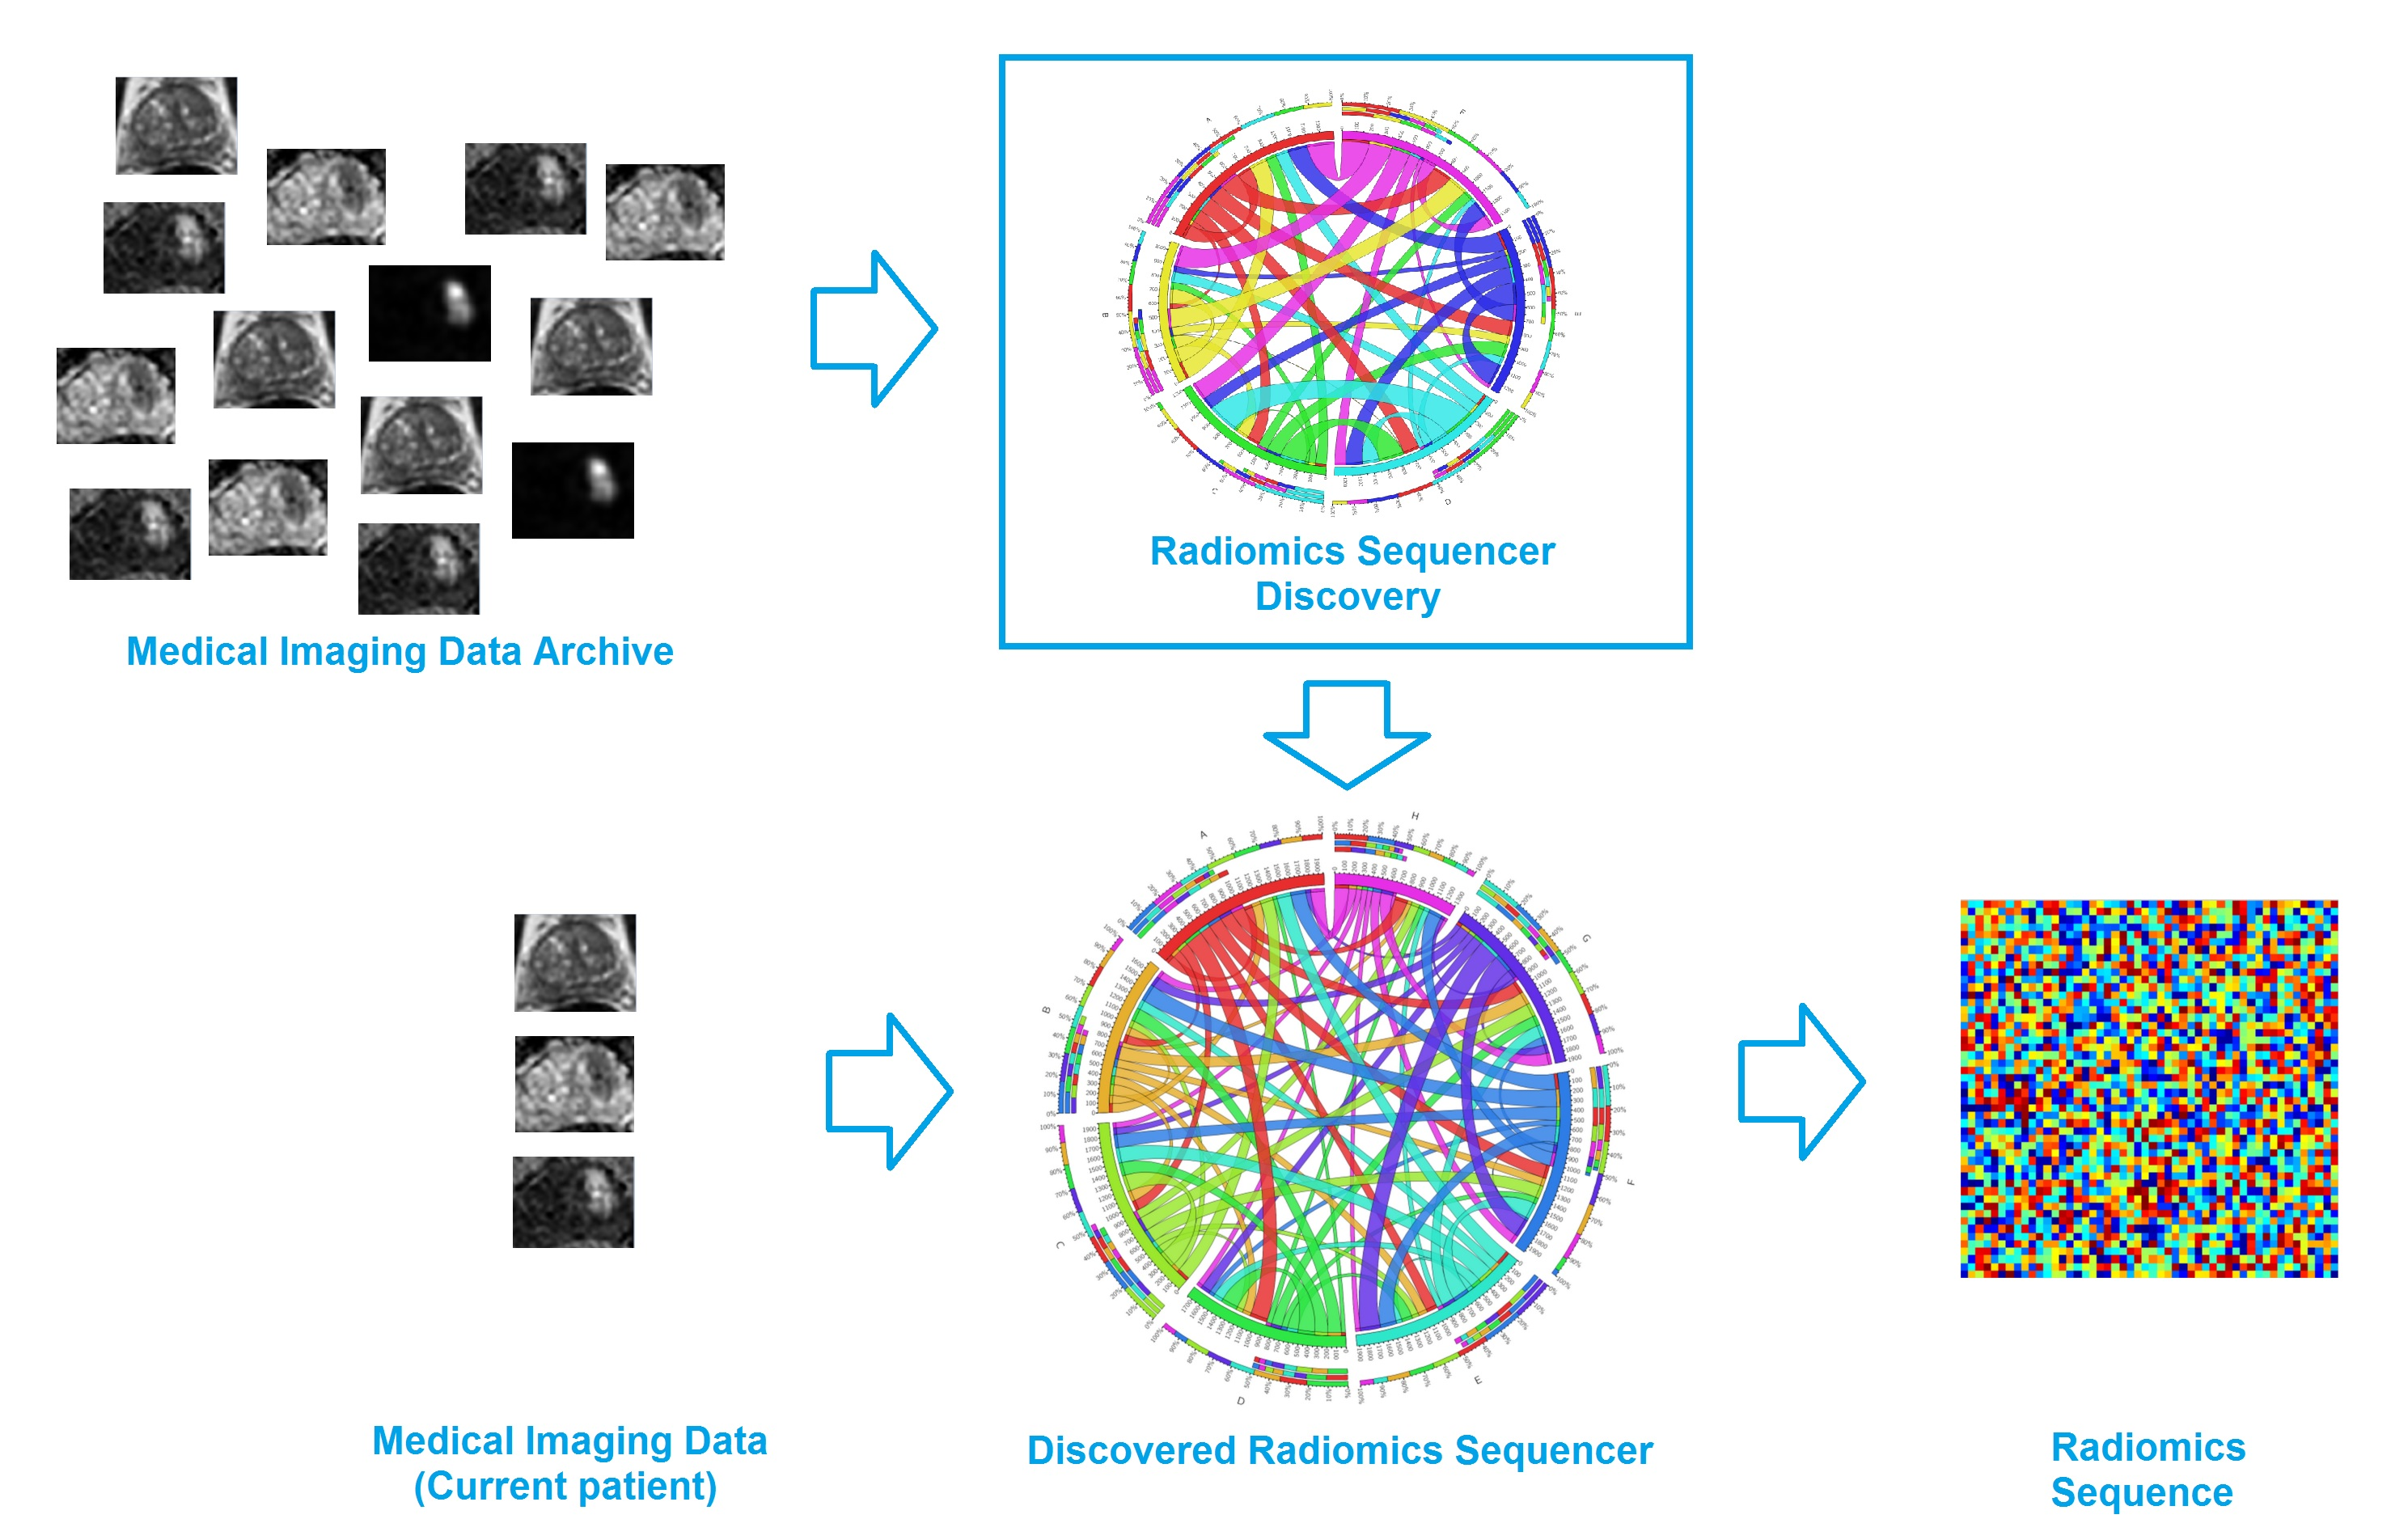 The discovery radiomics framework - first, a wealth of standardized medical imaging data from past patients are fed into the radiomics sequencer discovery engine, where a customized radiomics sequencer is constructed based on a large number of radiomics features that were discovered to capture highly unique tumor traits and characteristics. Second, for a new patient case, the discovered radiomics sequencer is then used to extract a wealth of customized, tailored imaging-based features from the medical imaging data of the new patient case for comprehensive, custom quantification of the tumor phenotype.